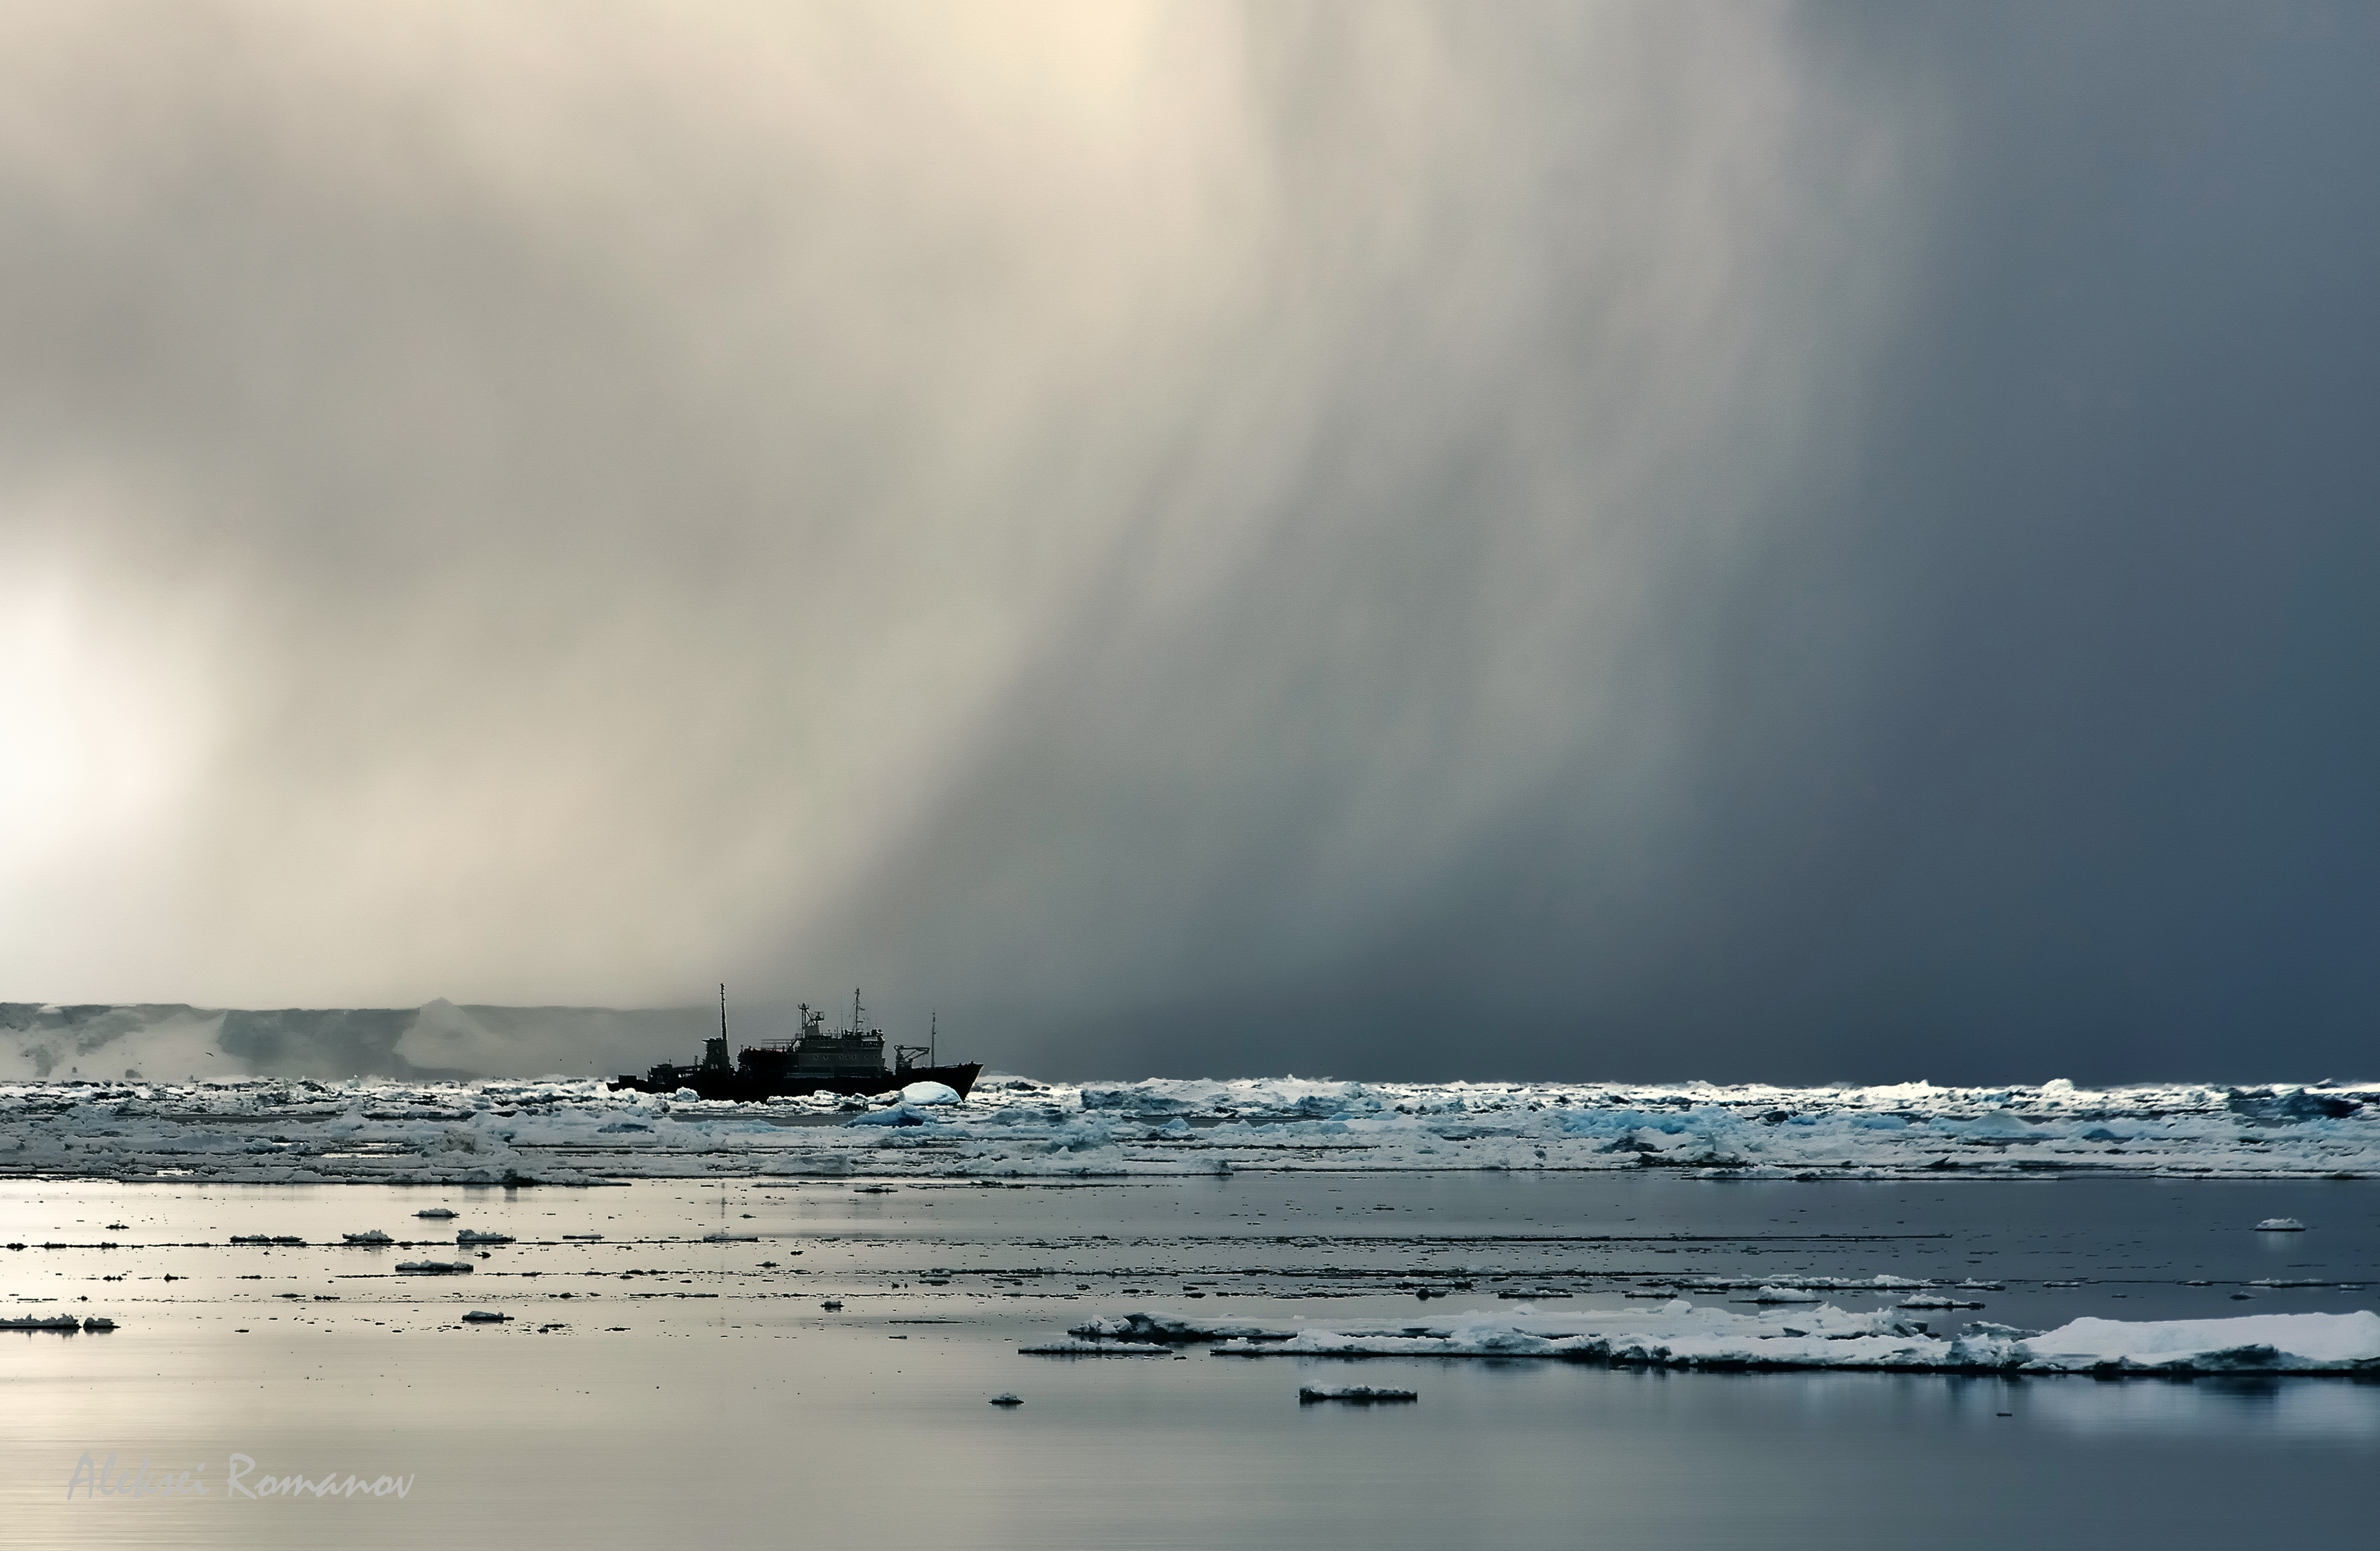 Storm and ship in the Weddell sea in Antarctica